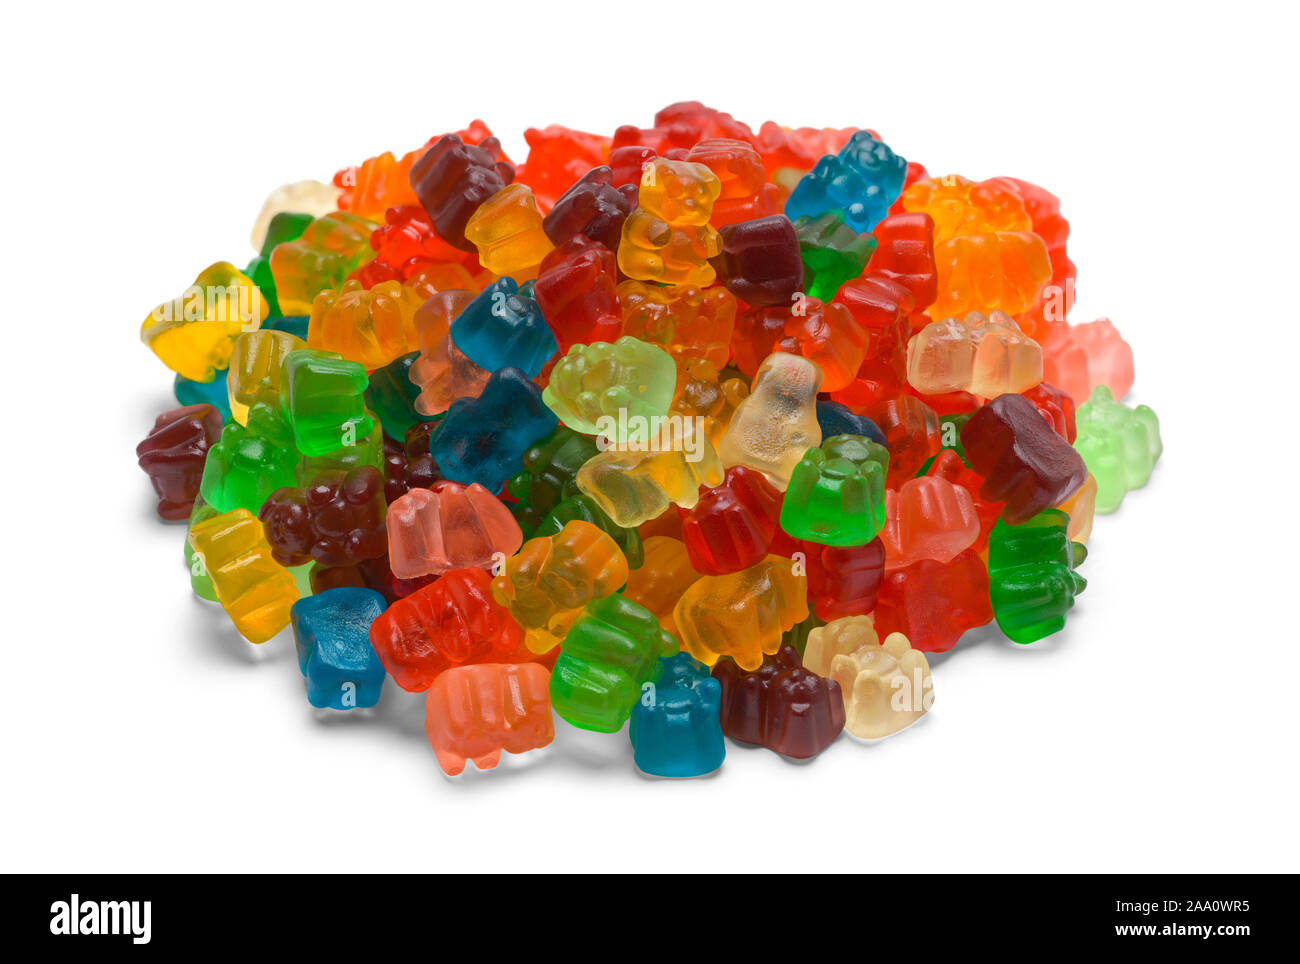 Pile of Colorful Gummy Bears Isolated on White Background. Stock Photo